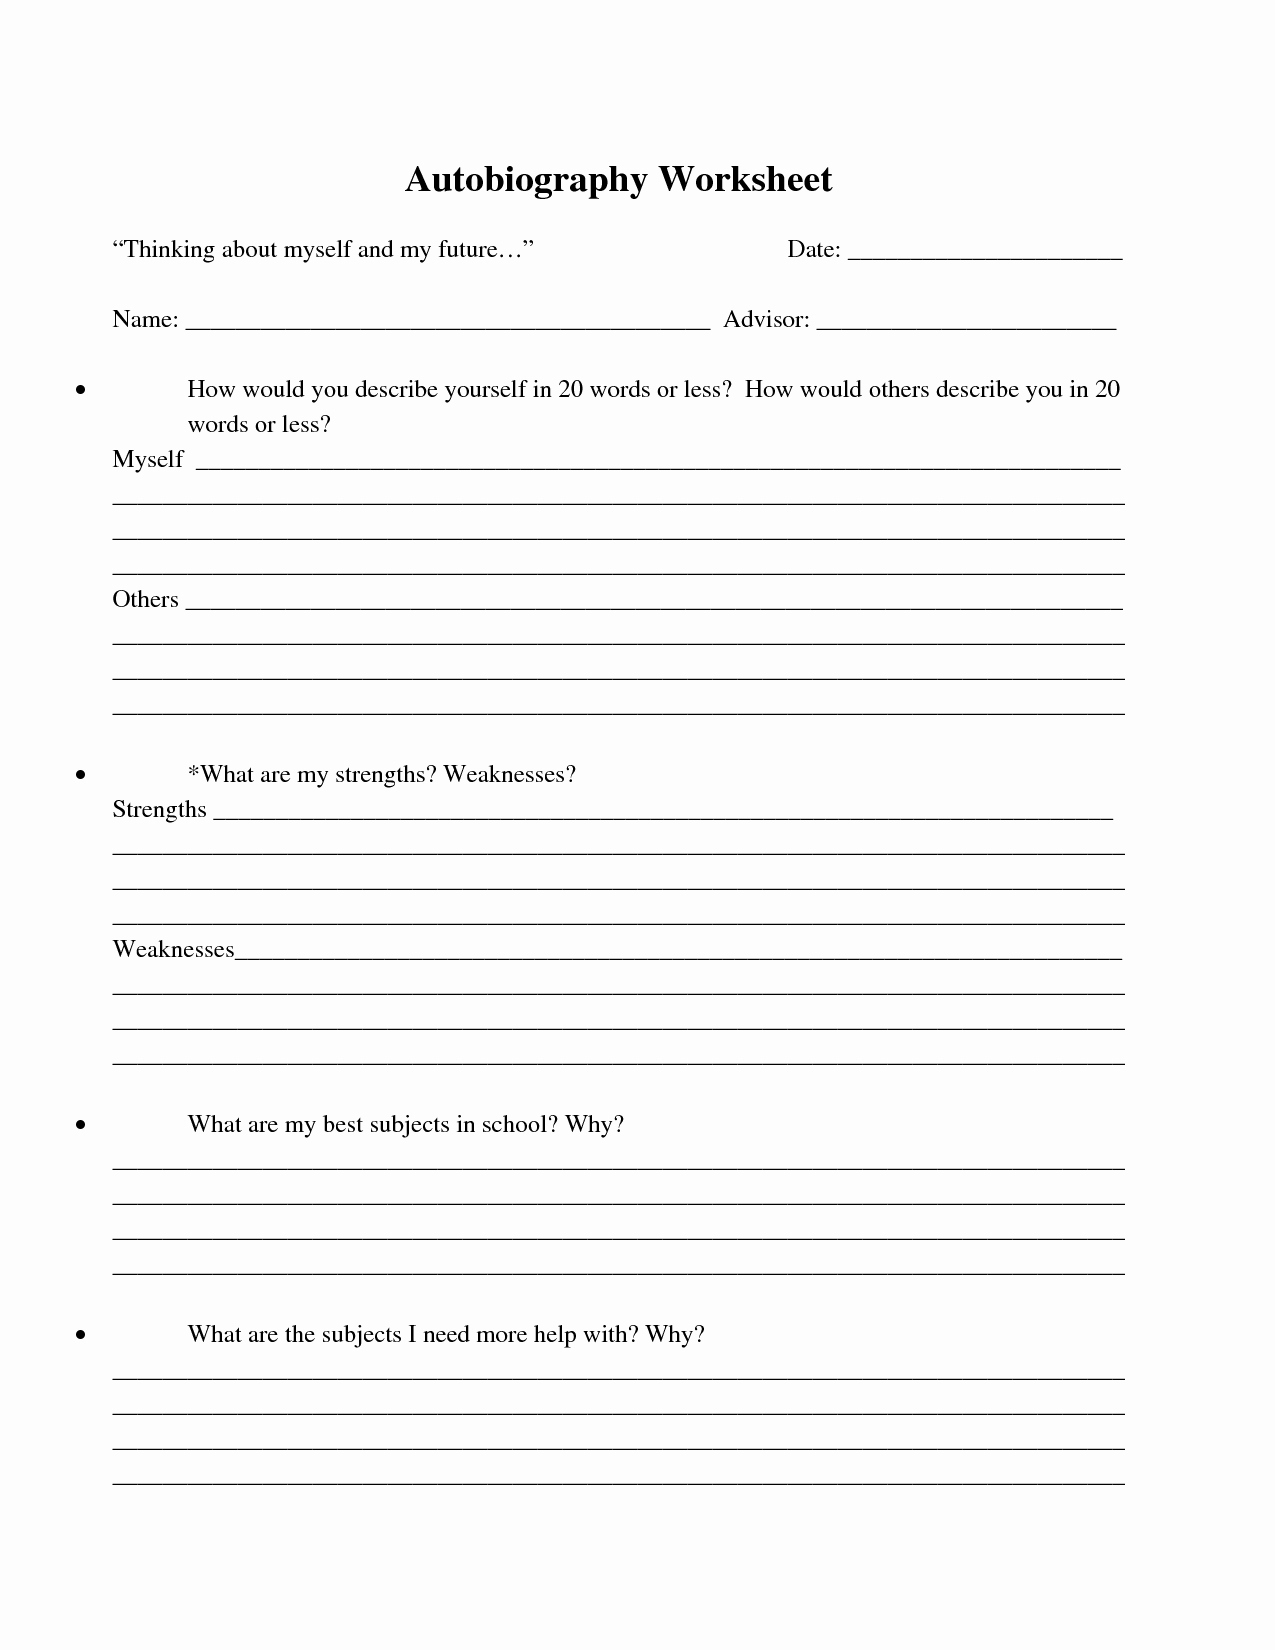 Worksheet Bio Poem Examples For Kids New Best S Of